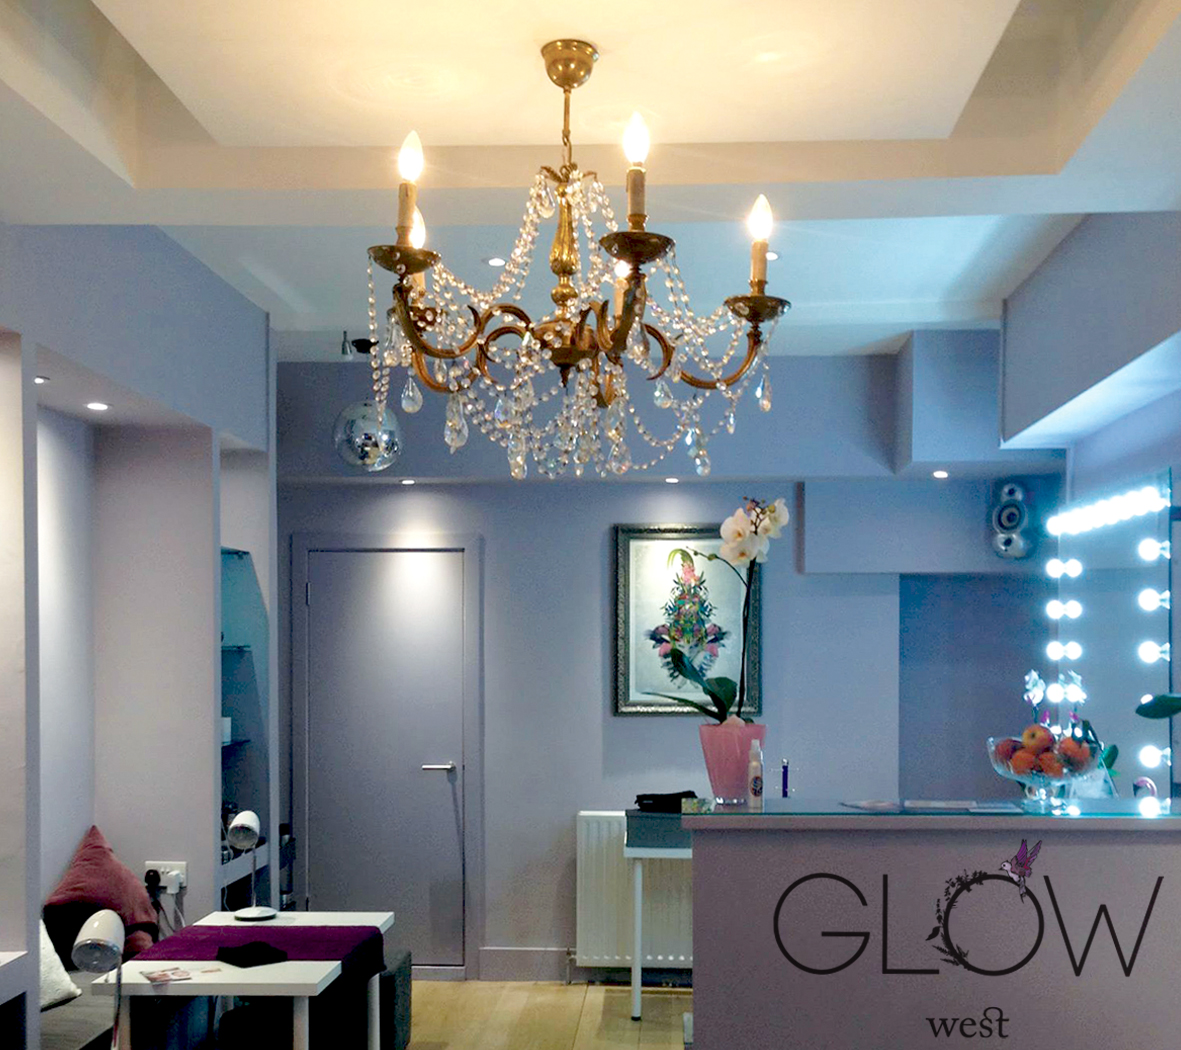 Glow-West-Salon-001.jpg